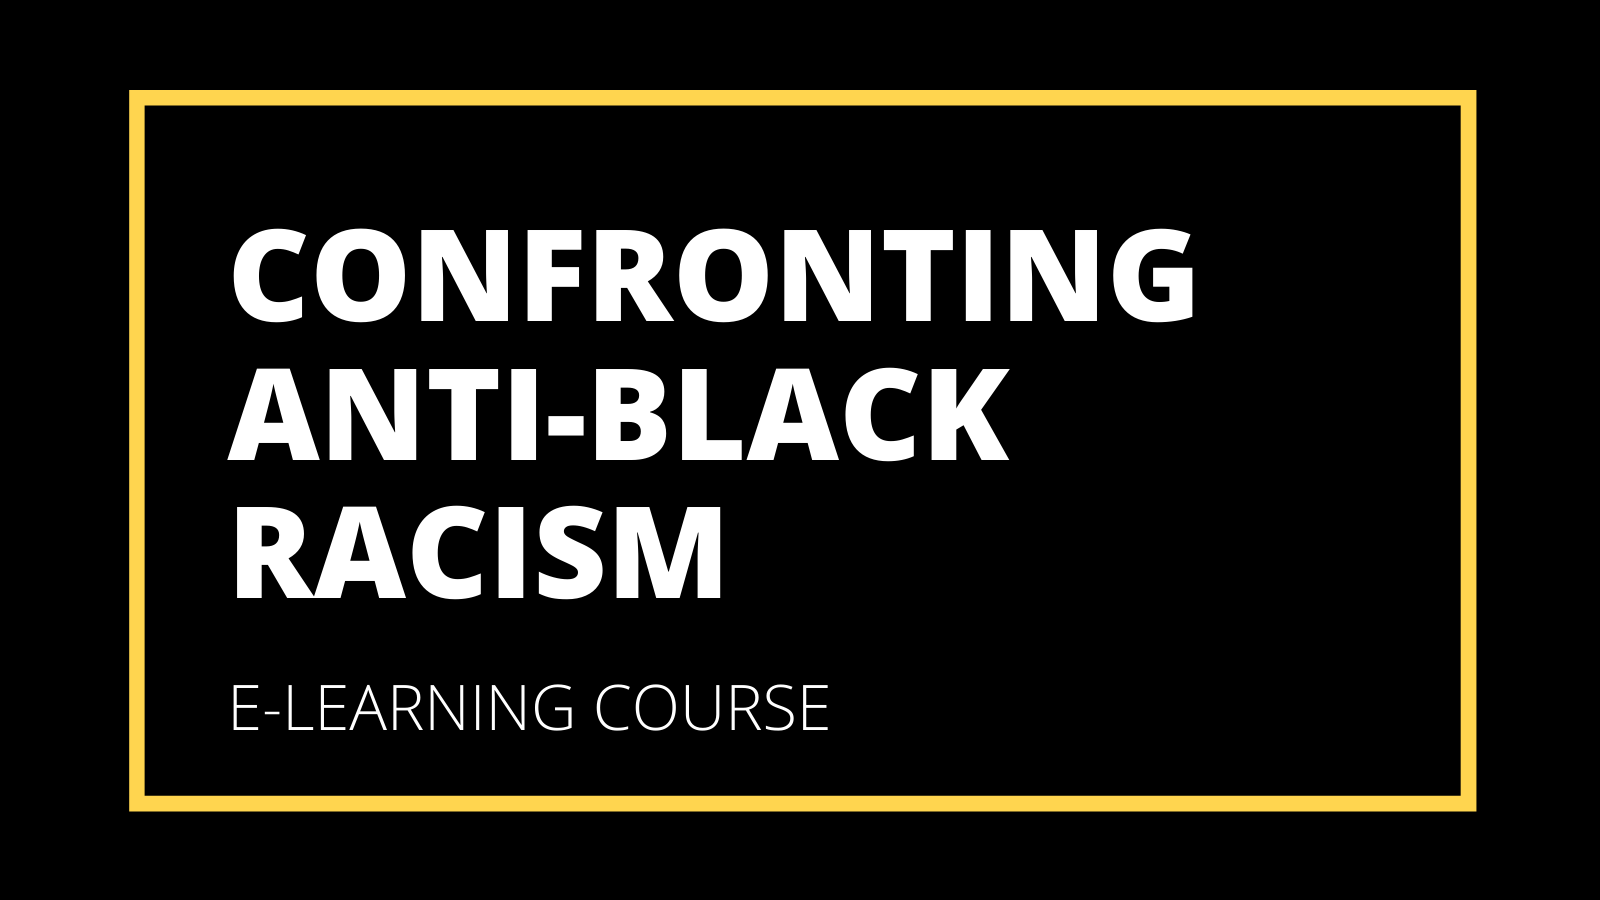 Confronting Anti-Black Racism